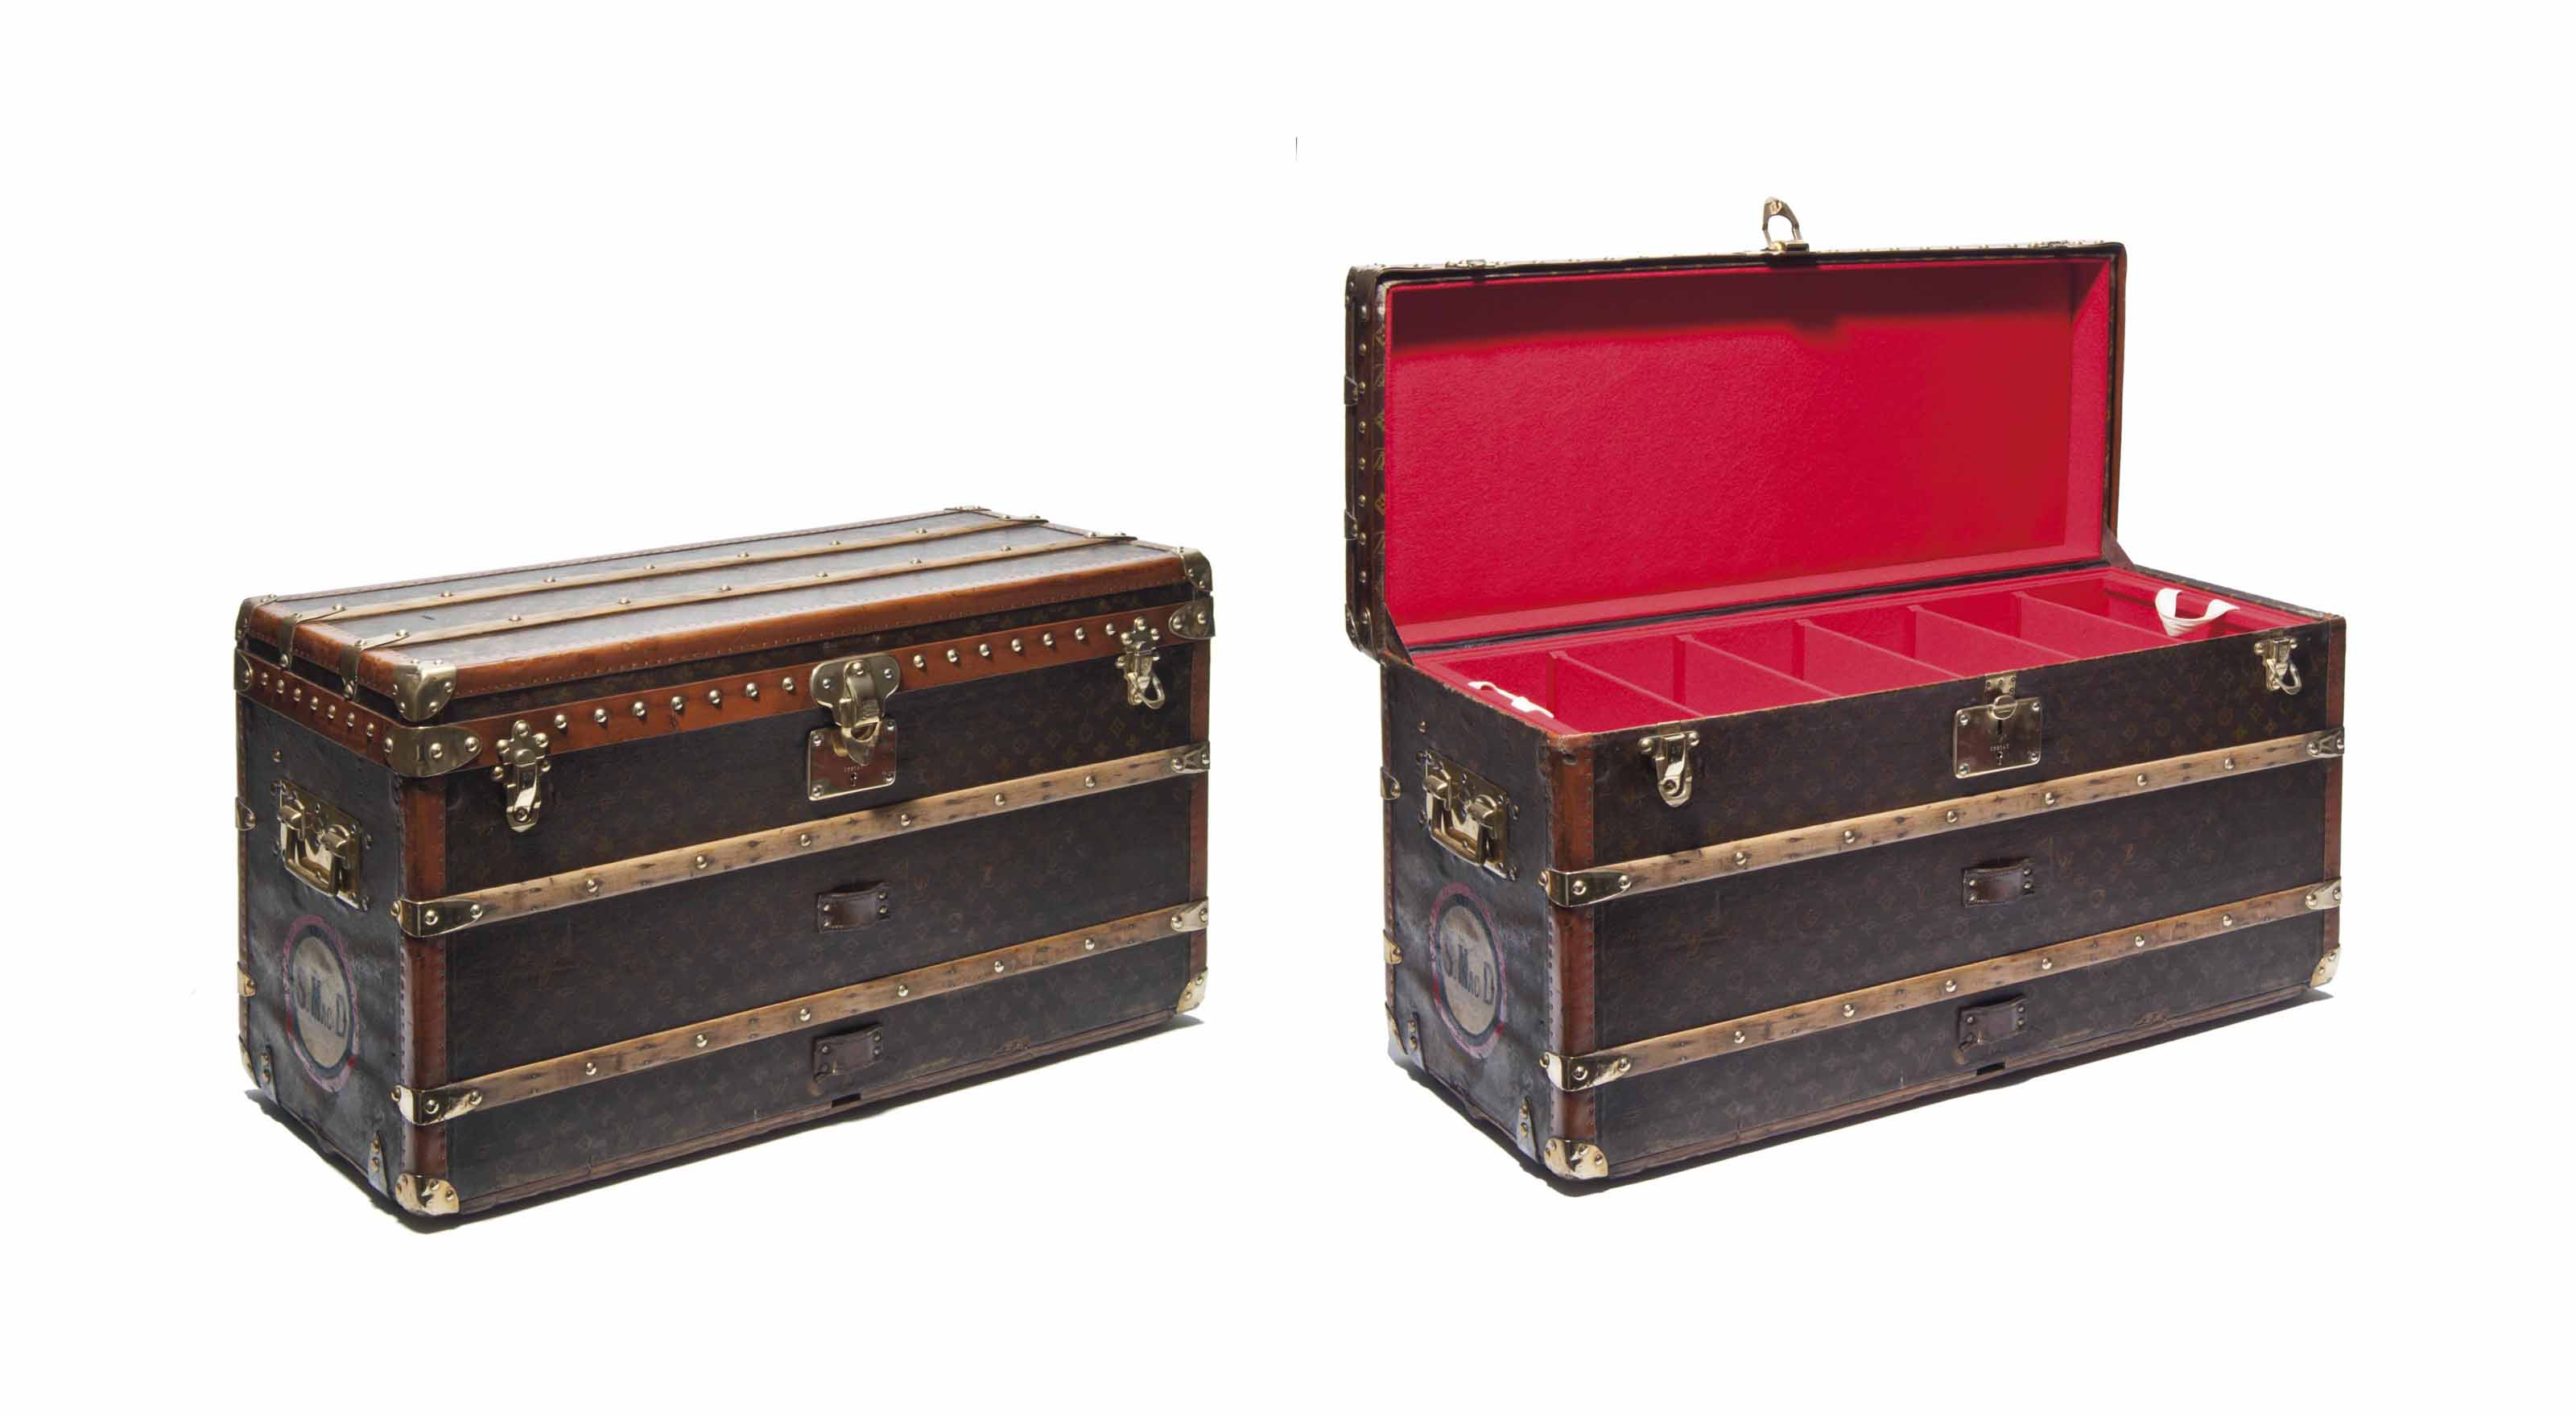 A SUPERB MONOGRAM CANVAS SHOE TRUNK